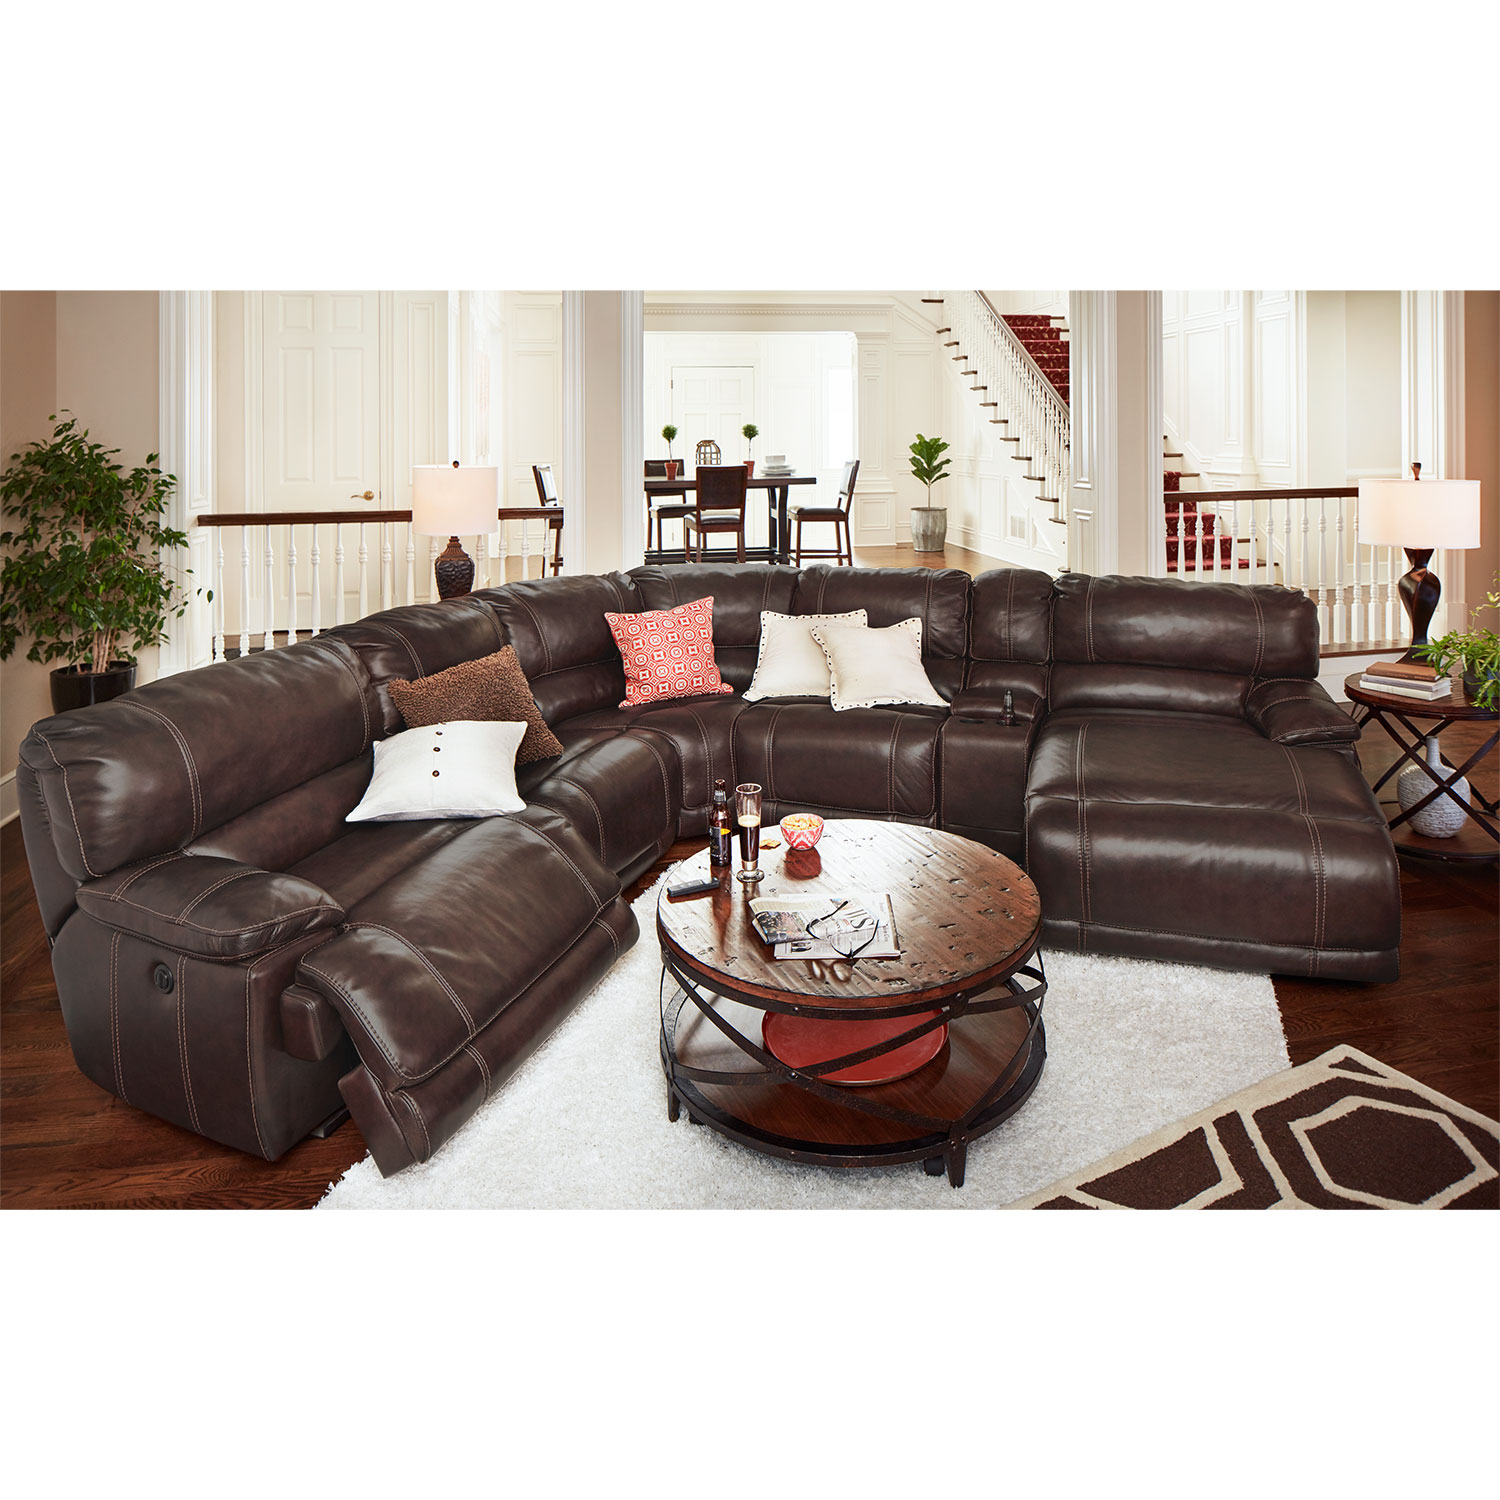 chocolate raf sofas sofa mod living in modular left freedom laf leather furniture seat brown hamilton vintage room with chaise